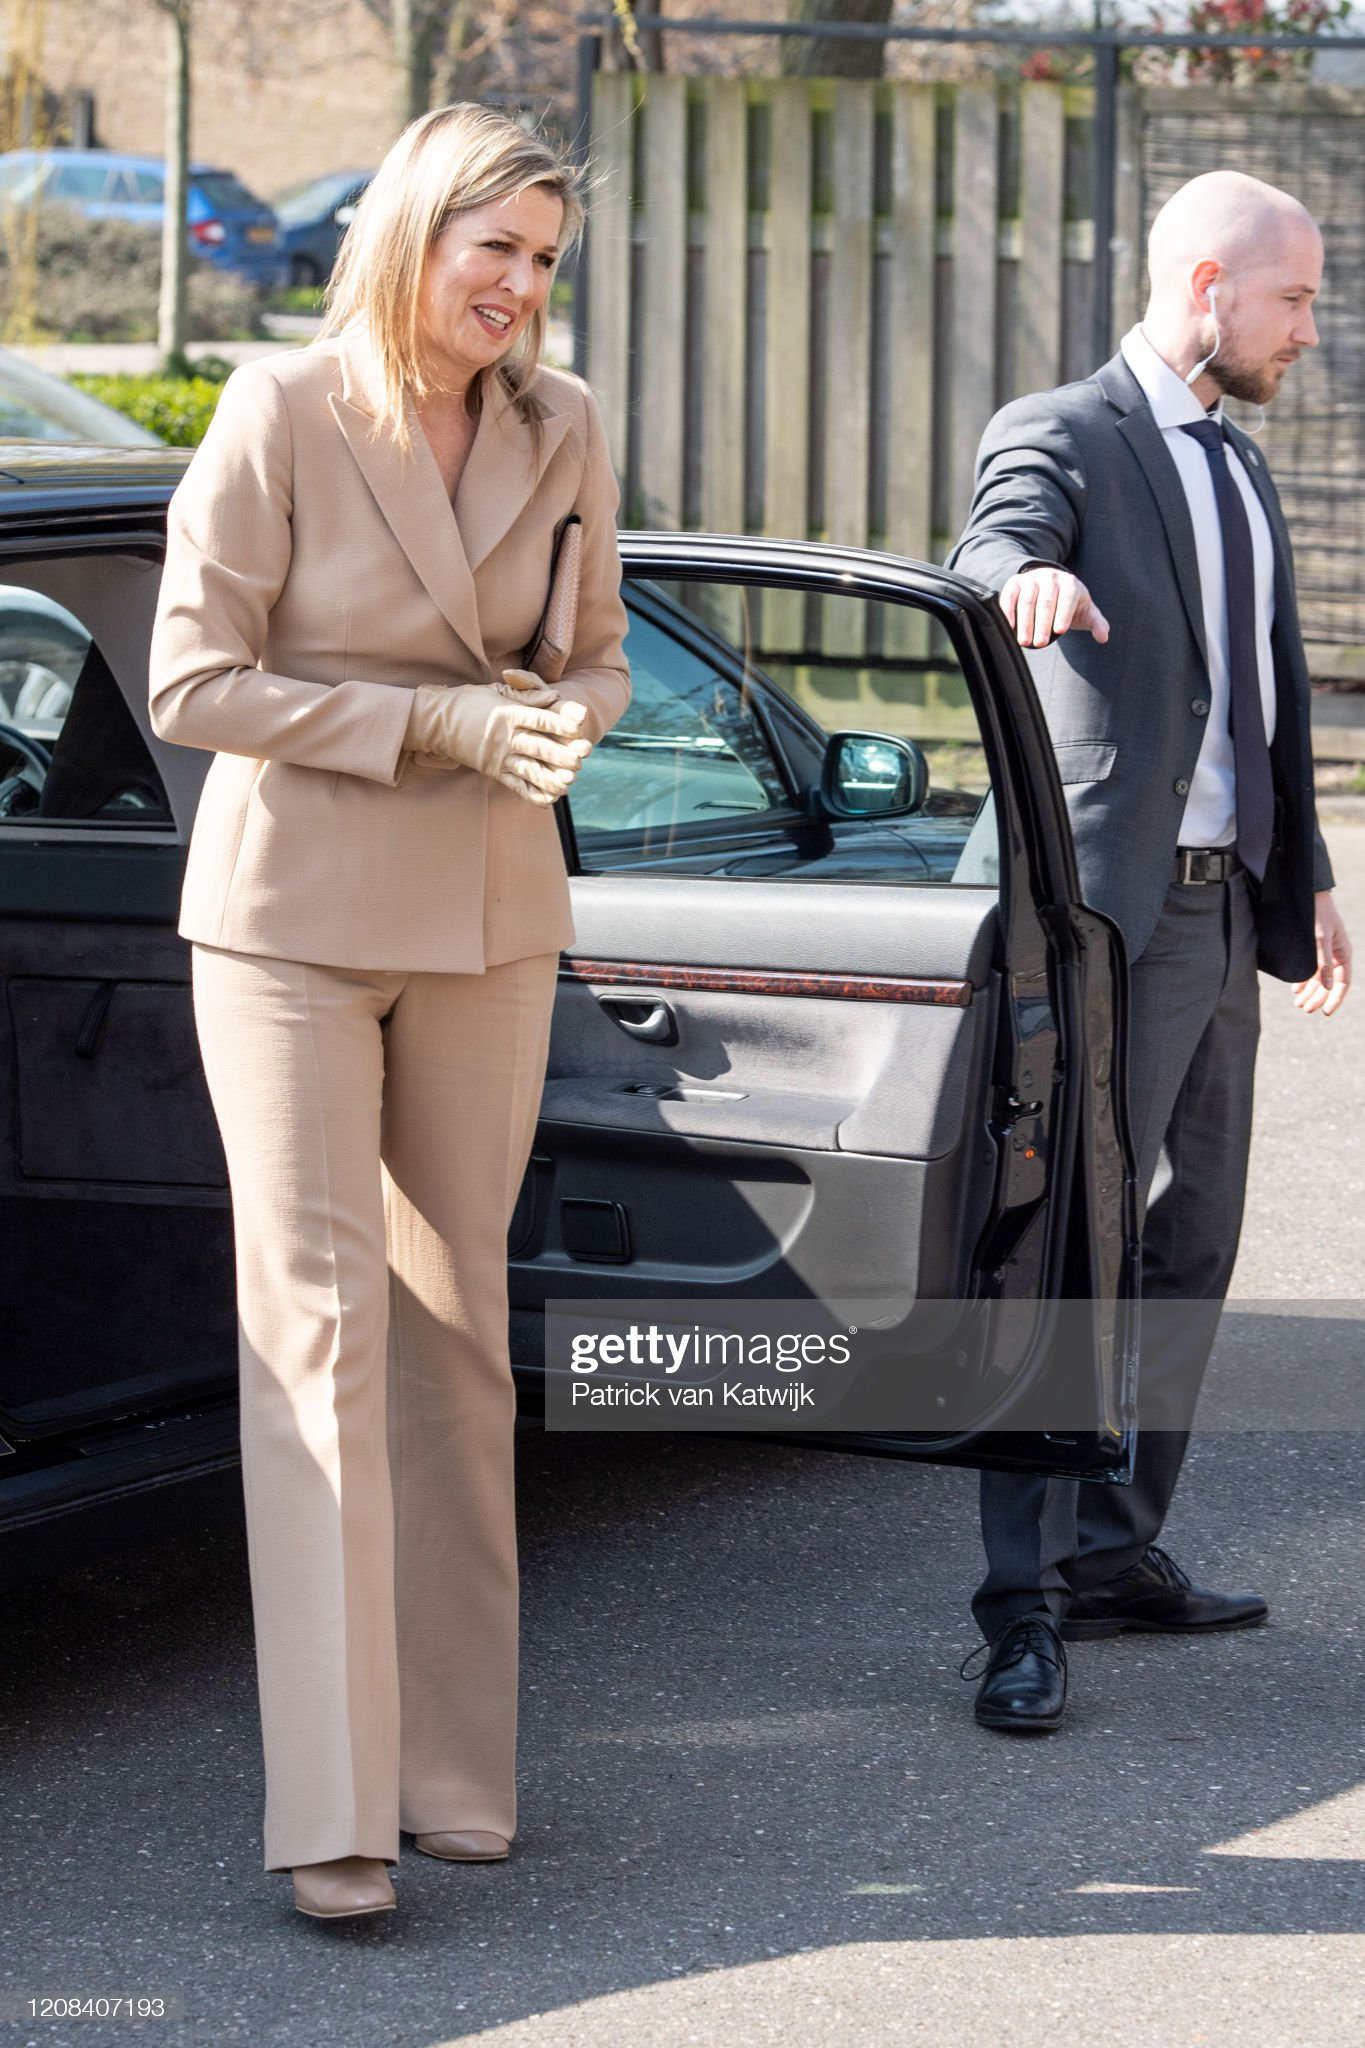 https://media.gettyimages.com/photos/queen-maxima-of-the-netherlands-visits-zuidbaak-floriculture-company-picture-id1208407193?s=2048x2048